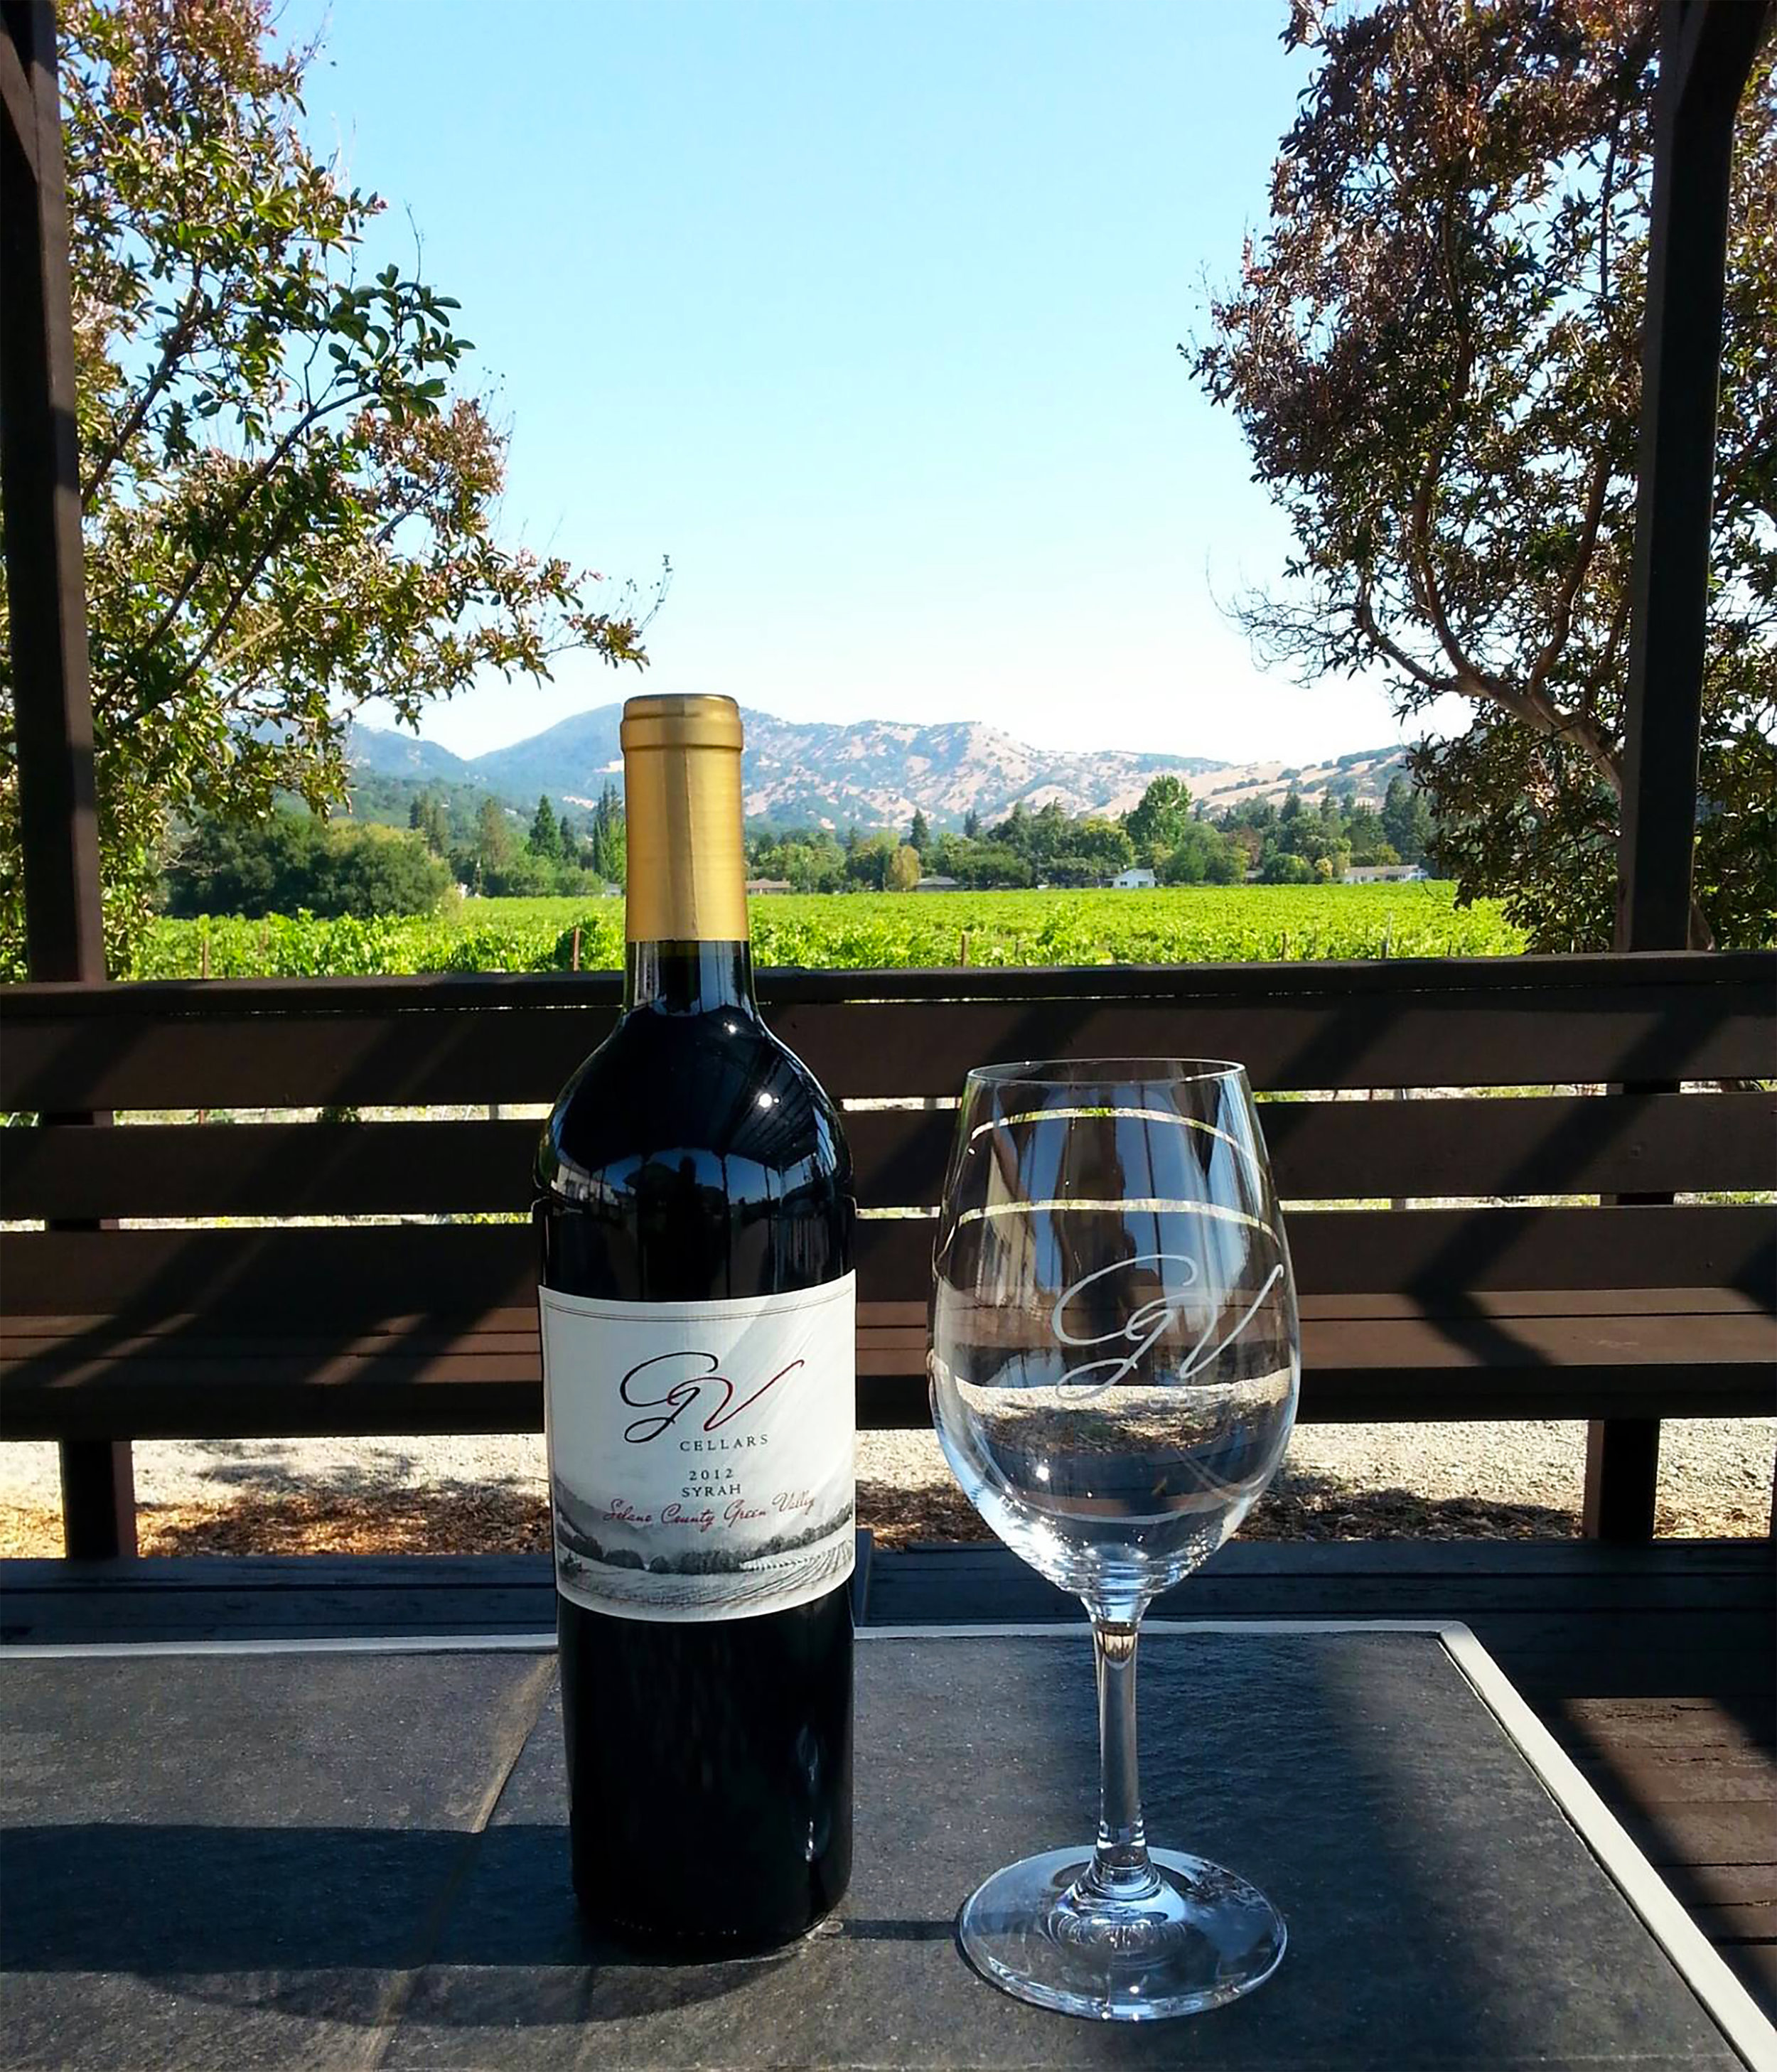 Bottle&WineGlass on Picnic w View .jpg